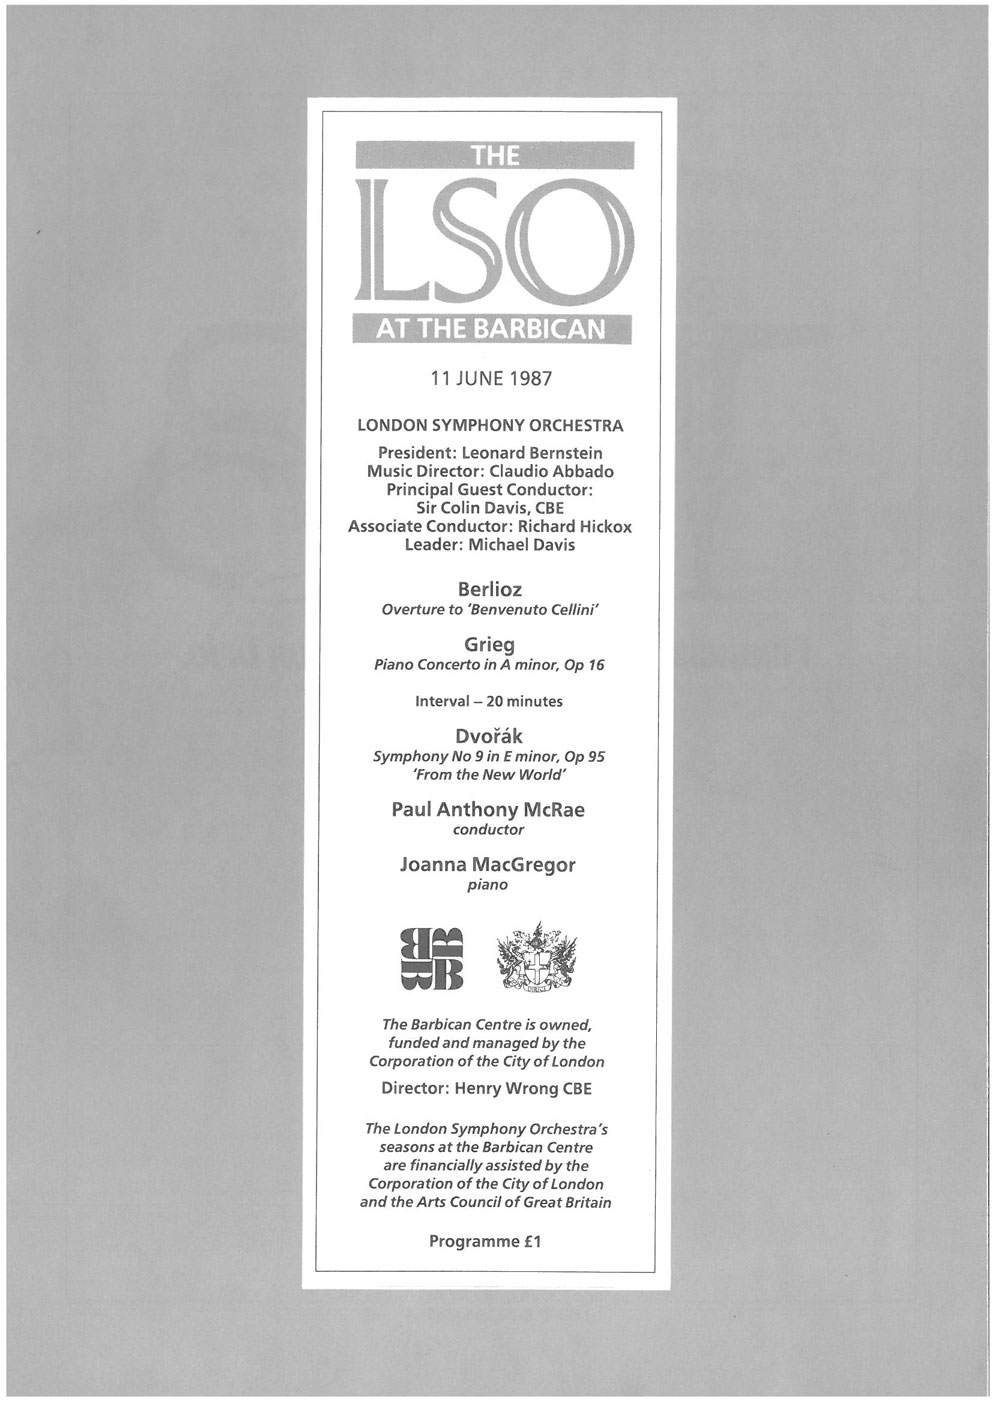 Programme, 1987, LSO at the Barbican